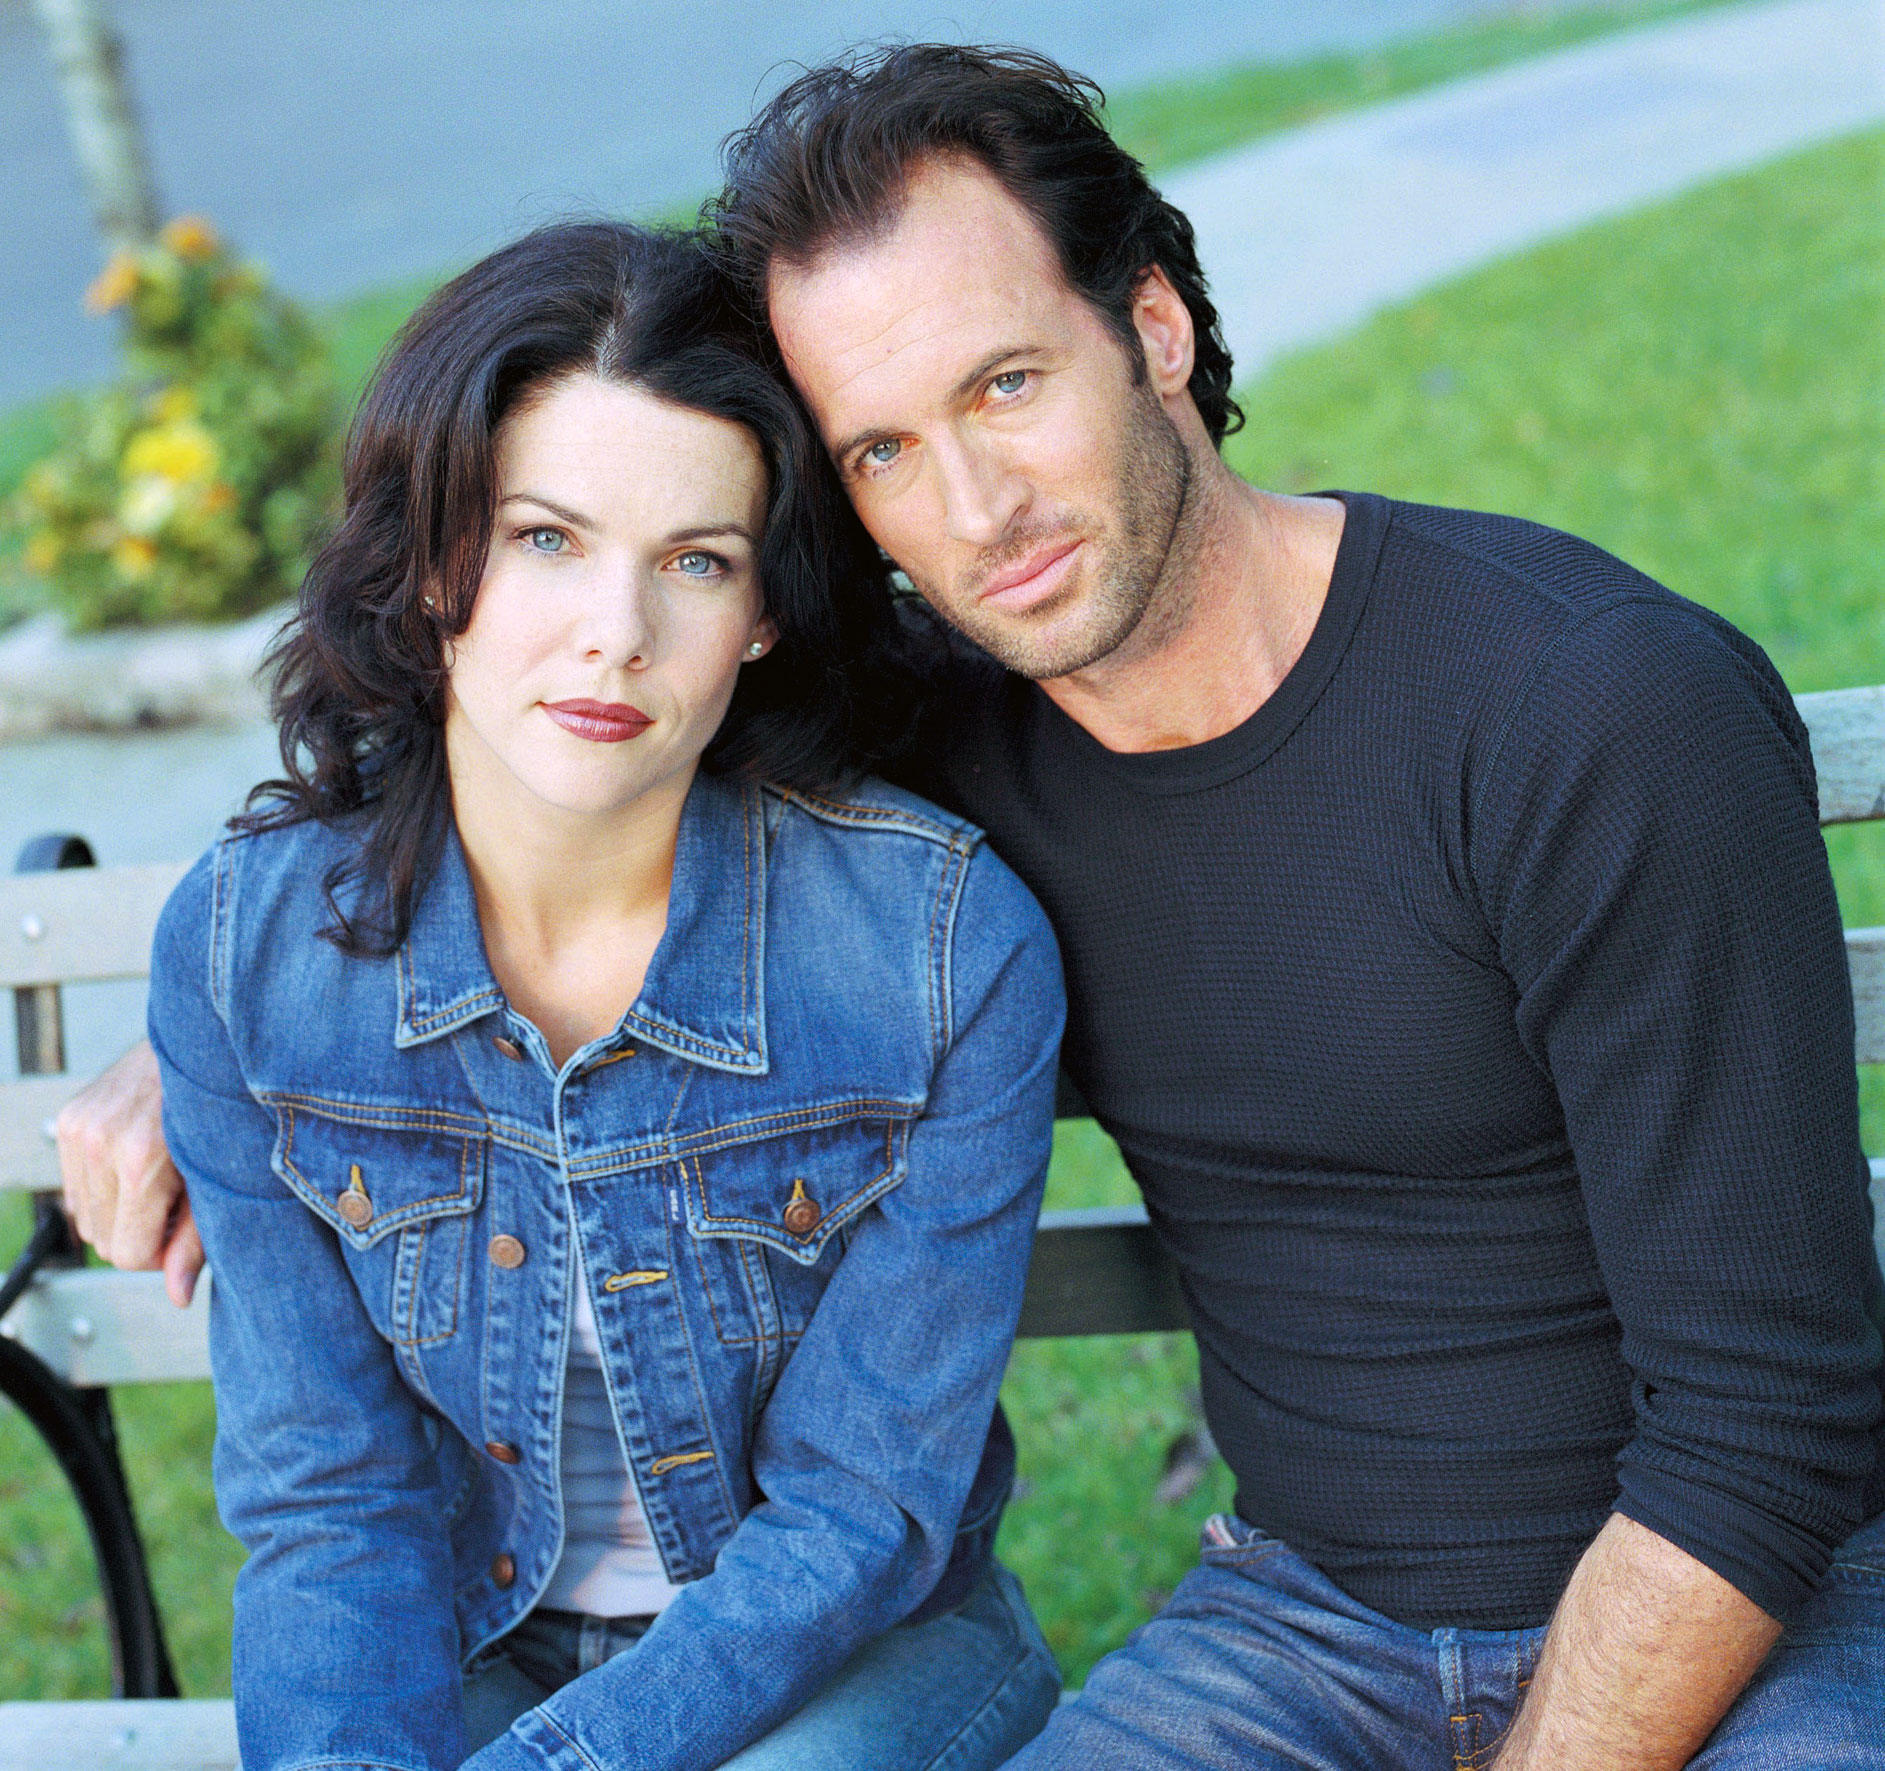 Best TV Couples Gilmore Girls Lauren Graham Scott Patterson - Show: Gilmore Girls Actors: Lauren Graham and Scott Patterson Networks: The WB and The CW Seasons: 7